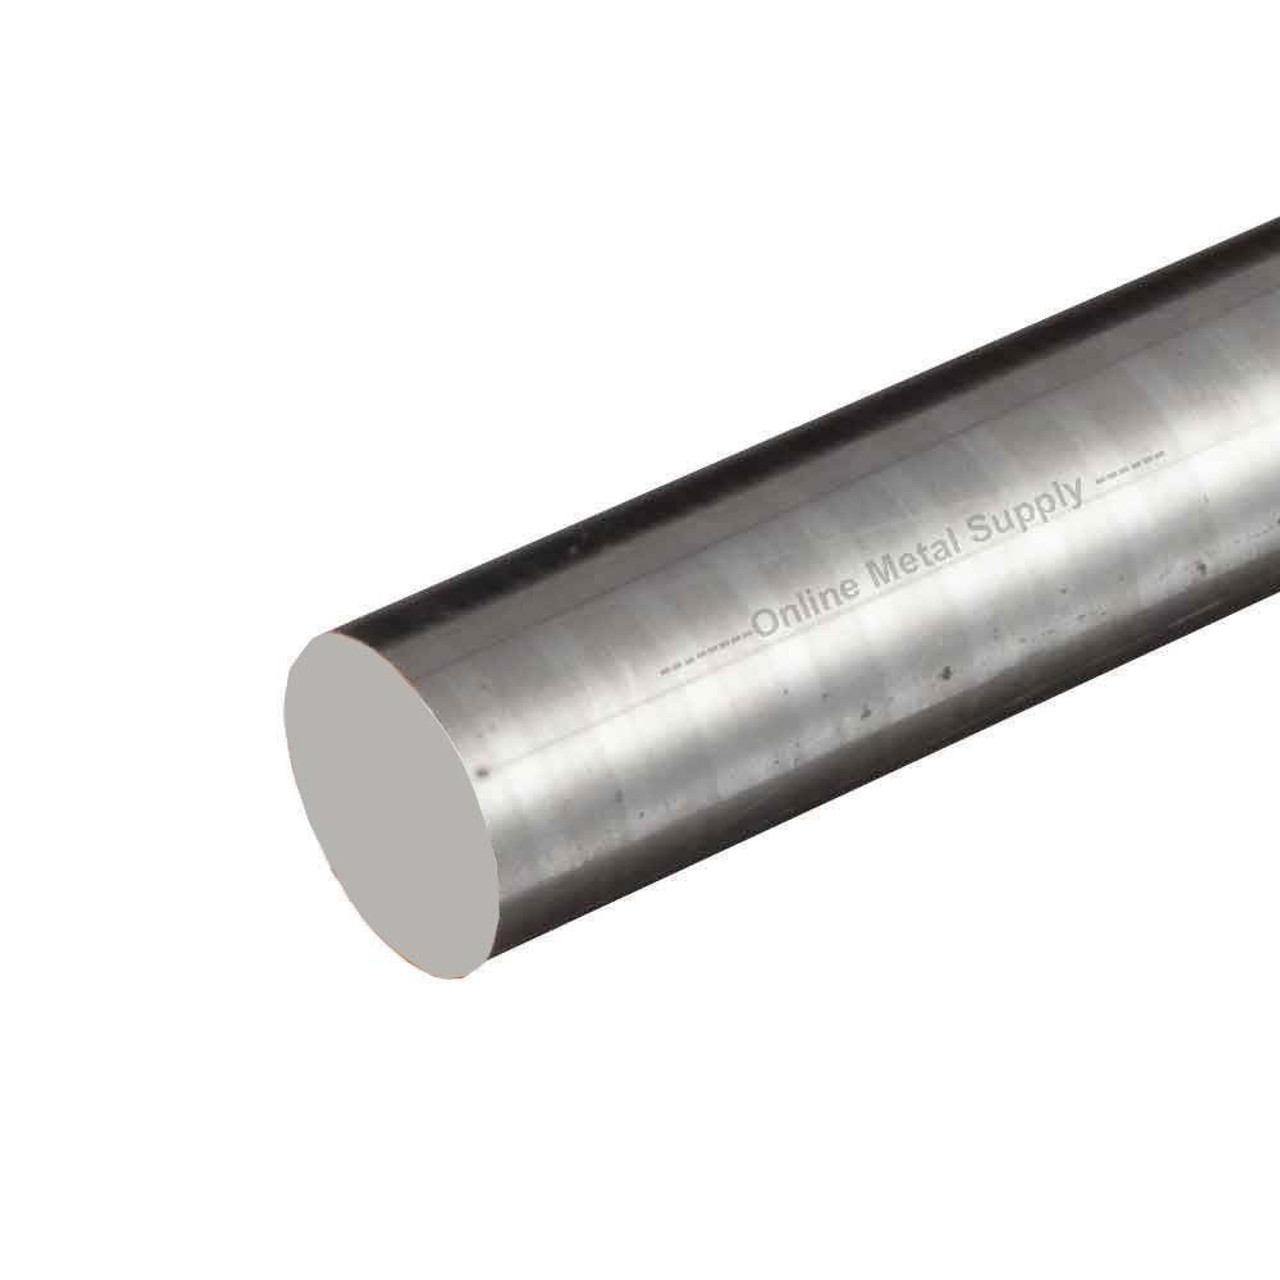 3.125 (3-1/8 inch) x 12 inches, 15-5 Cond A RT Stainless Steel Round Rod